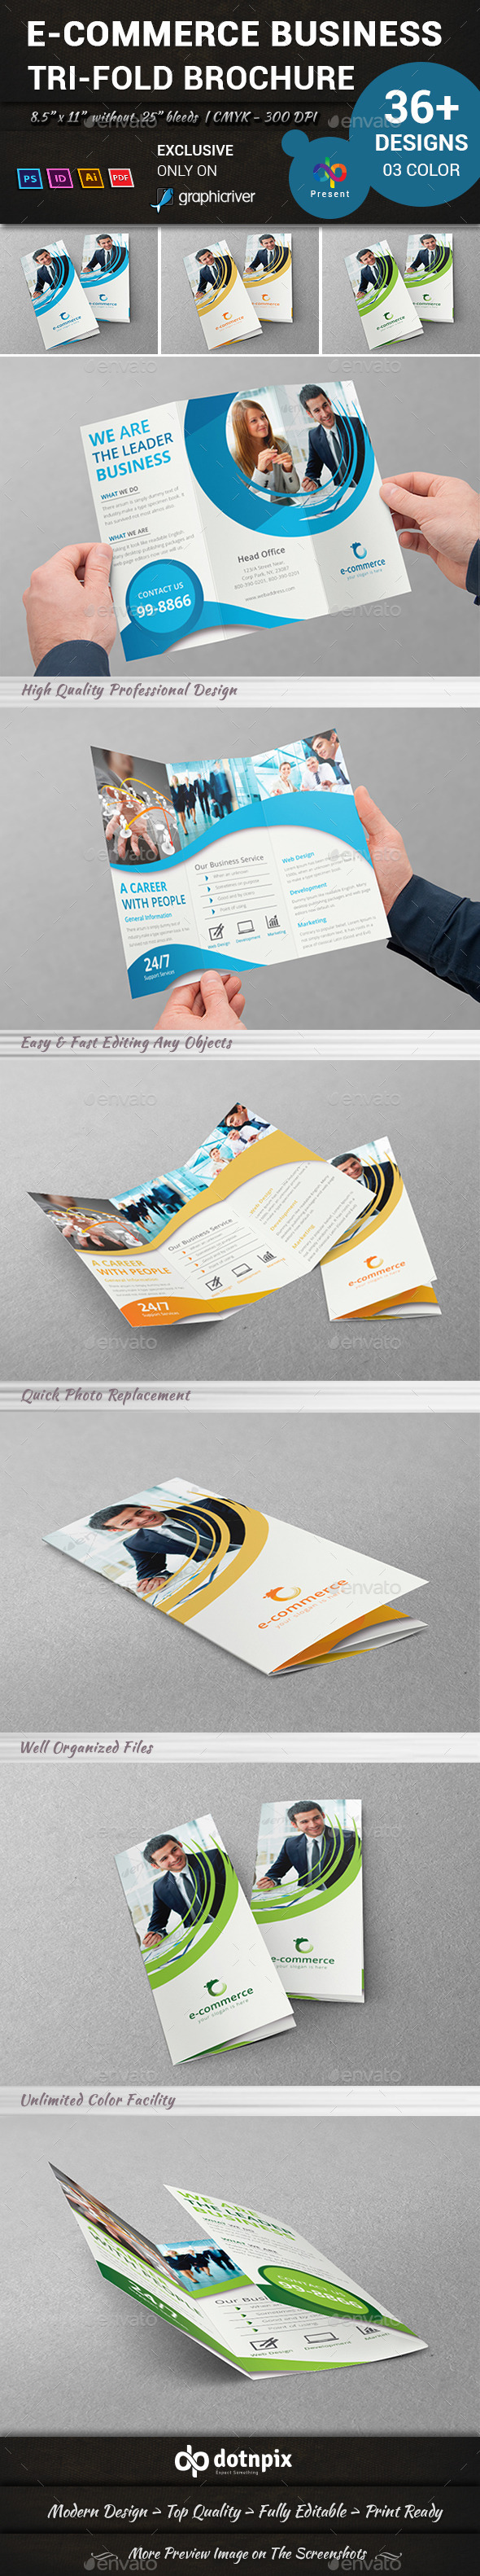 GraphicRiver E-Commerce Business Tri-Fold Brochure 10714416